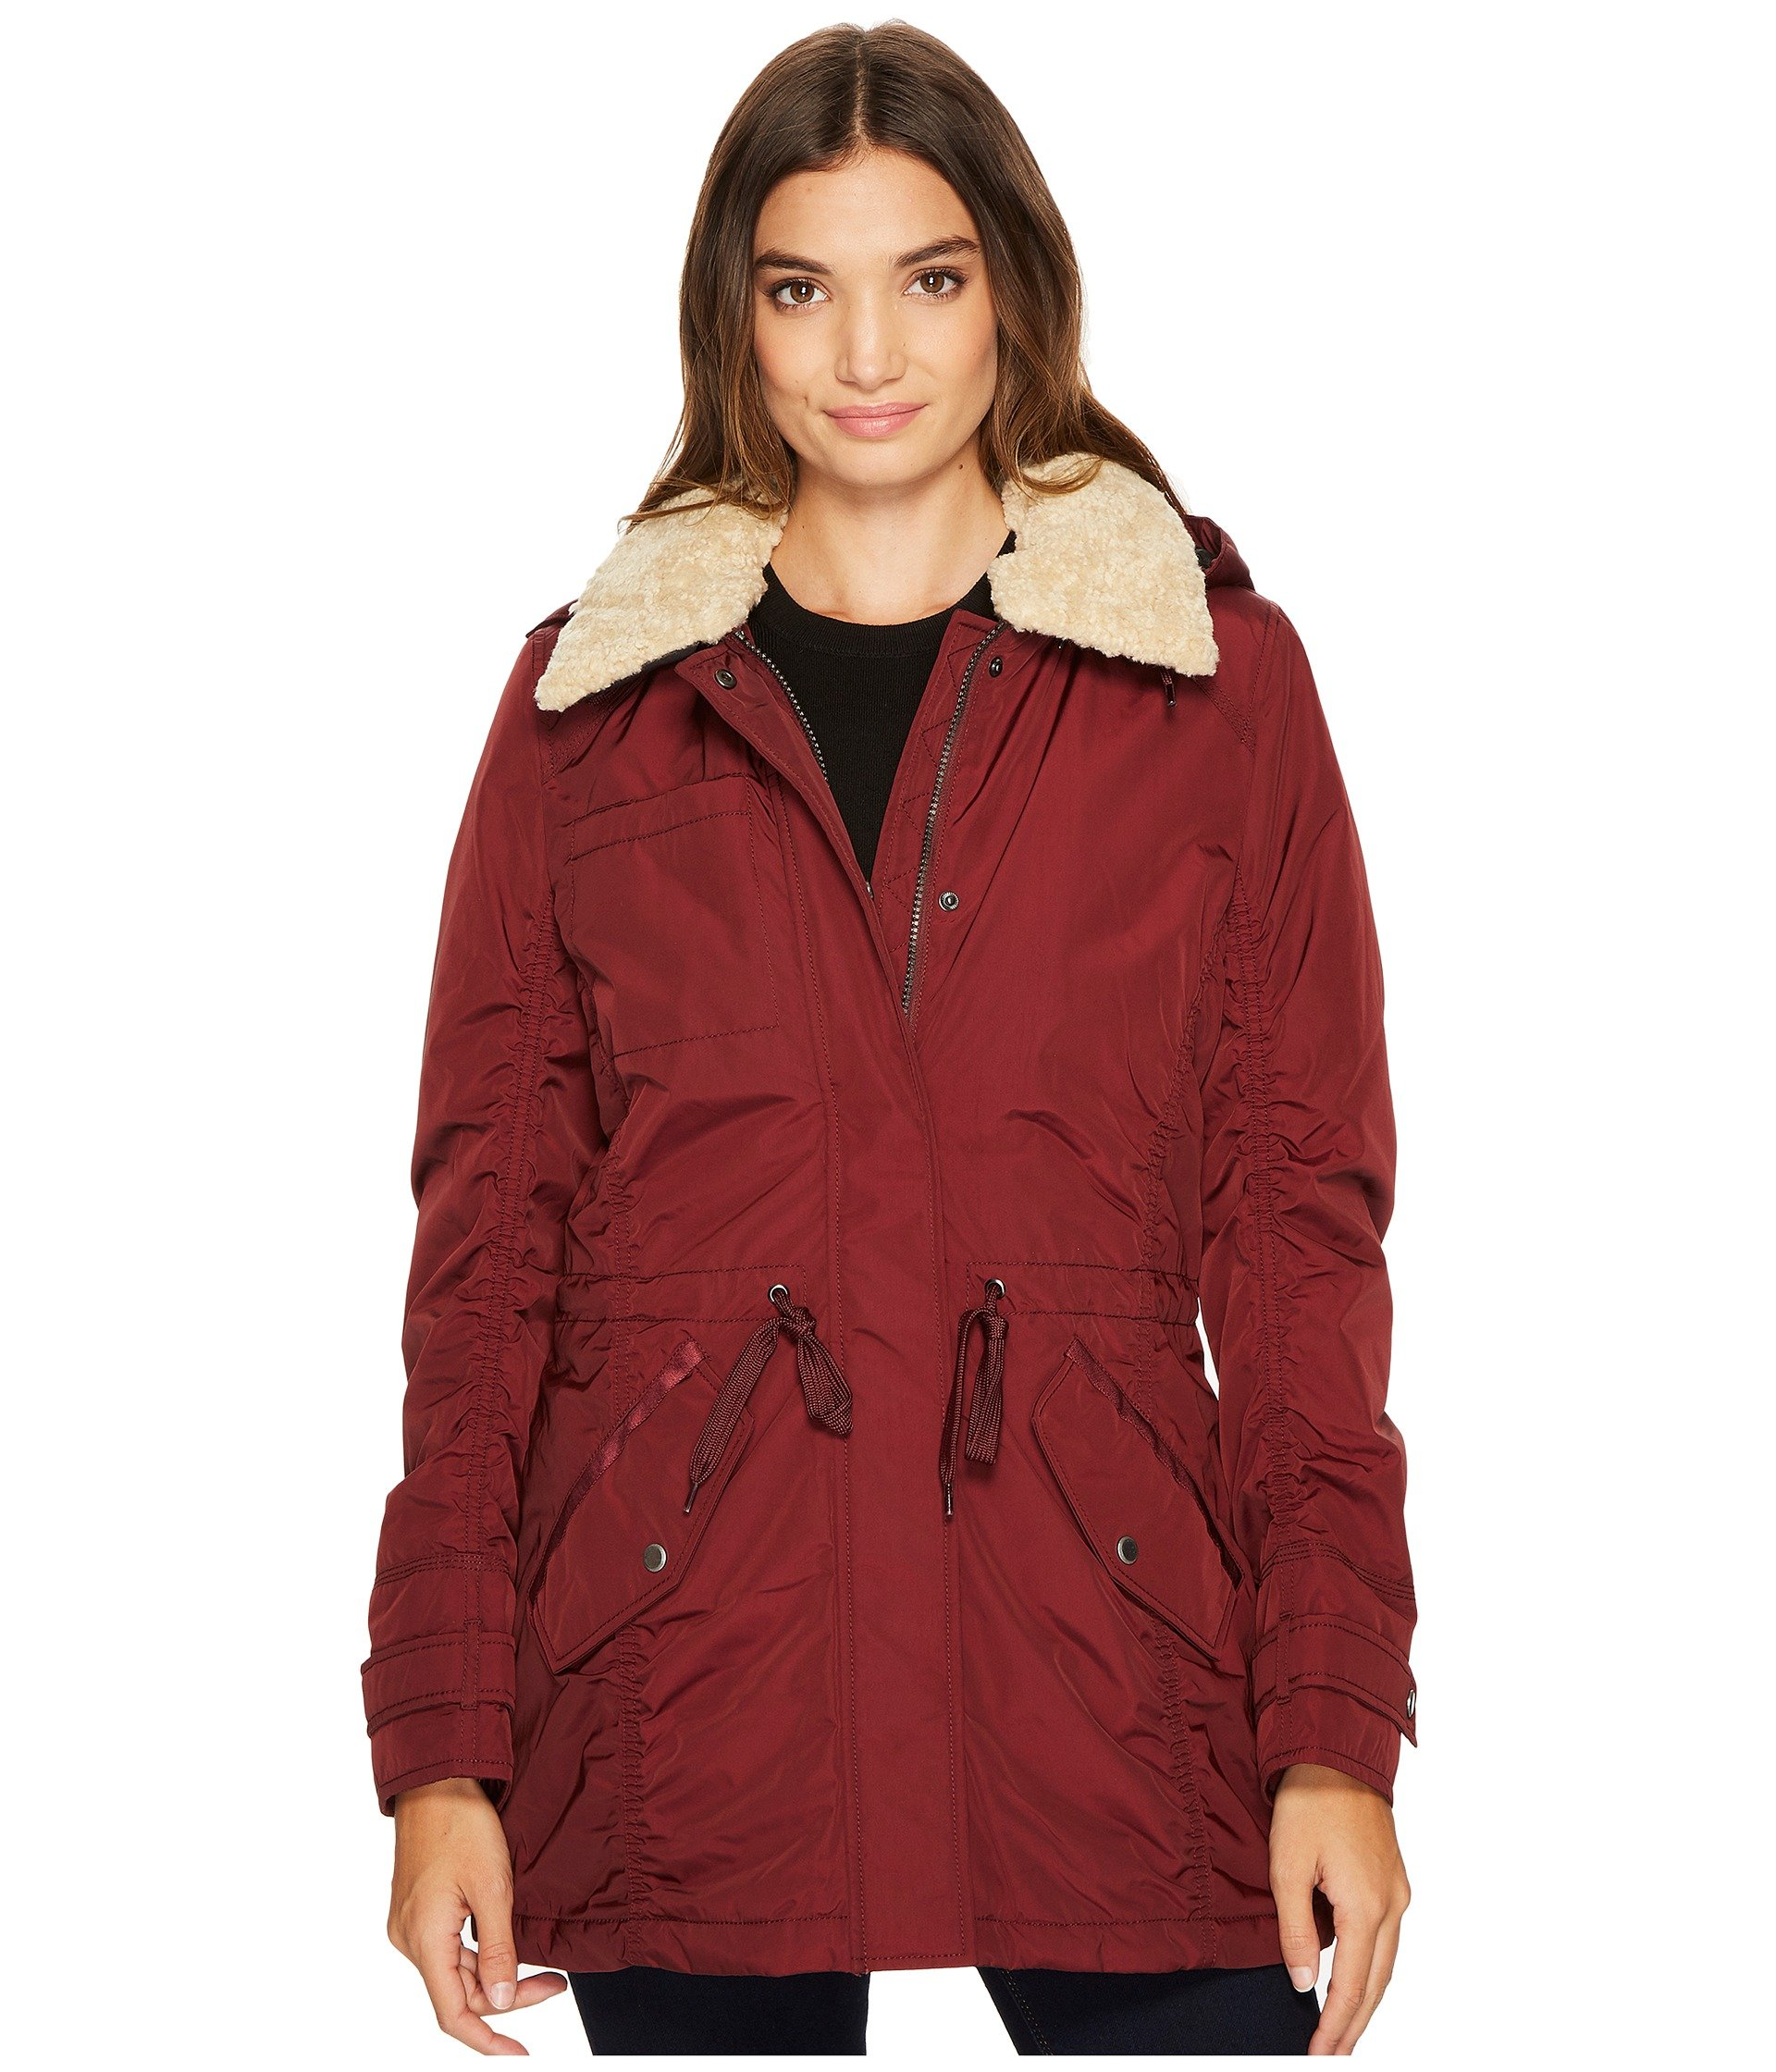 Marc New York by Andrew Marc Women's Nandie Fine Twill Nylon Jacket, Burgundy, Extra Large